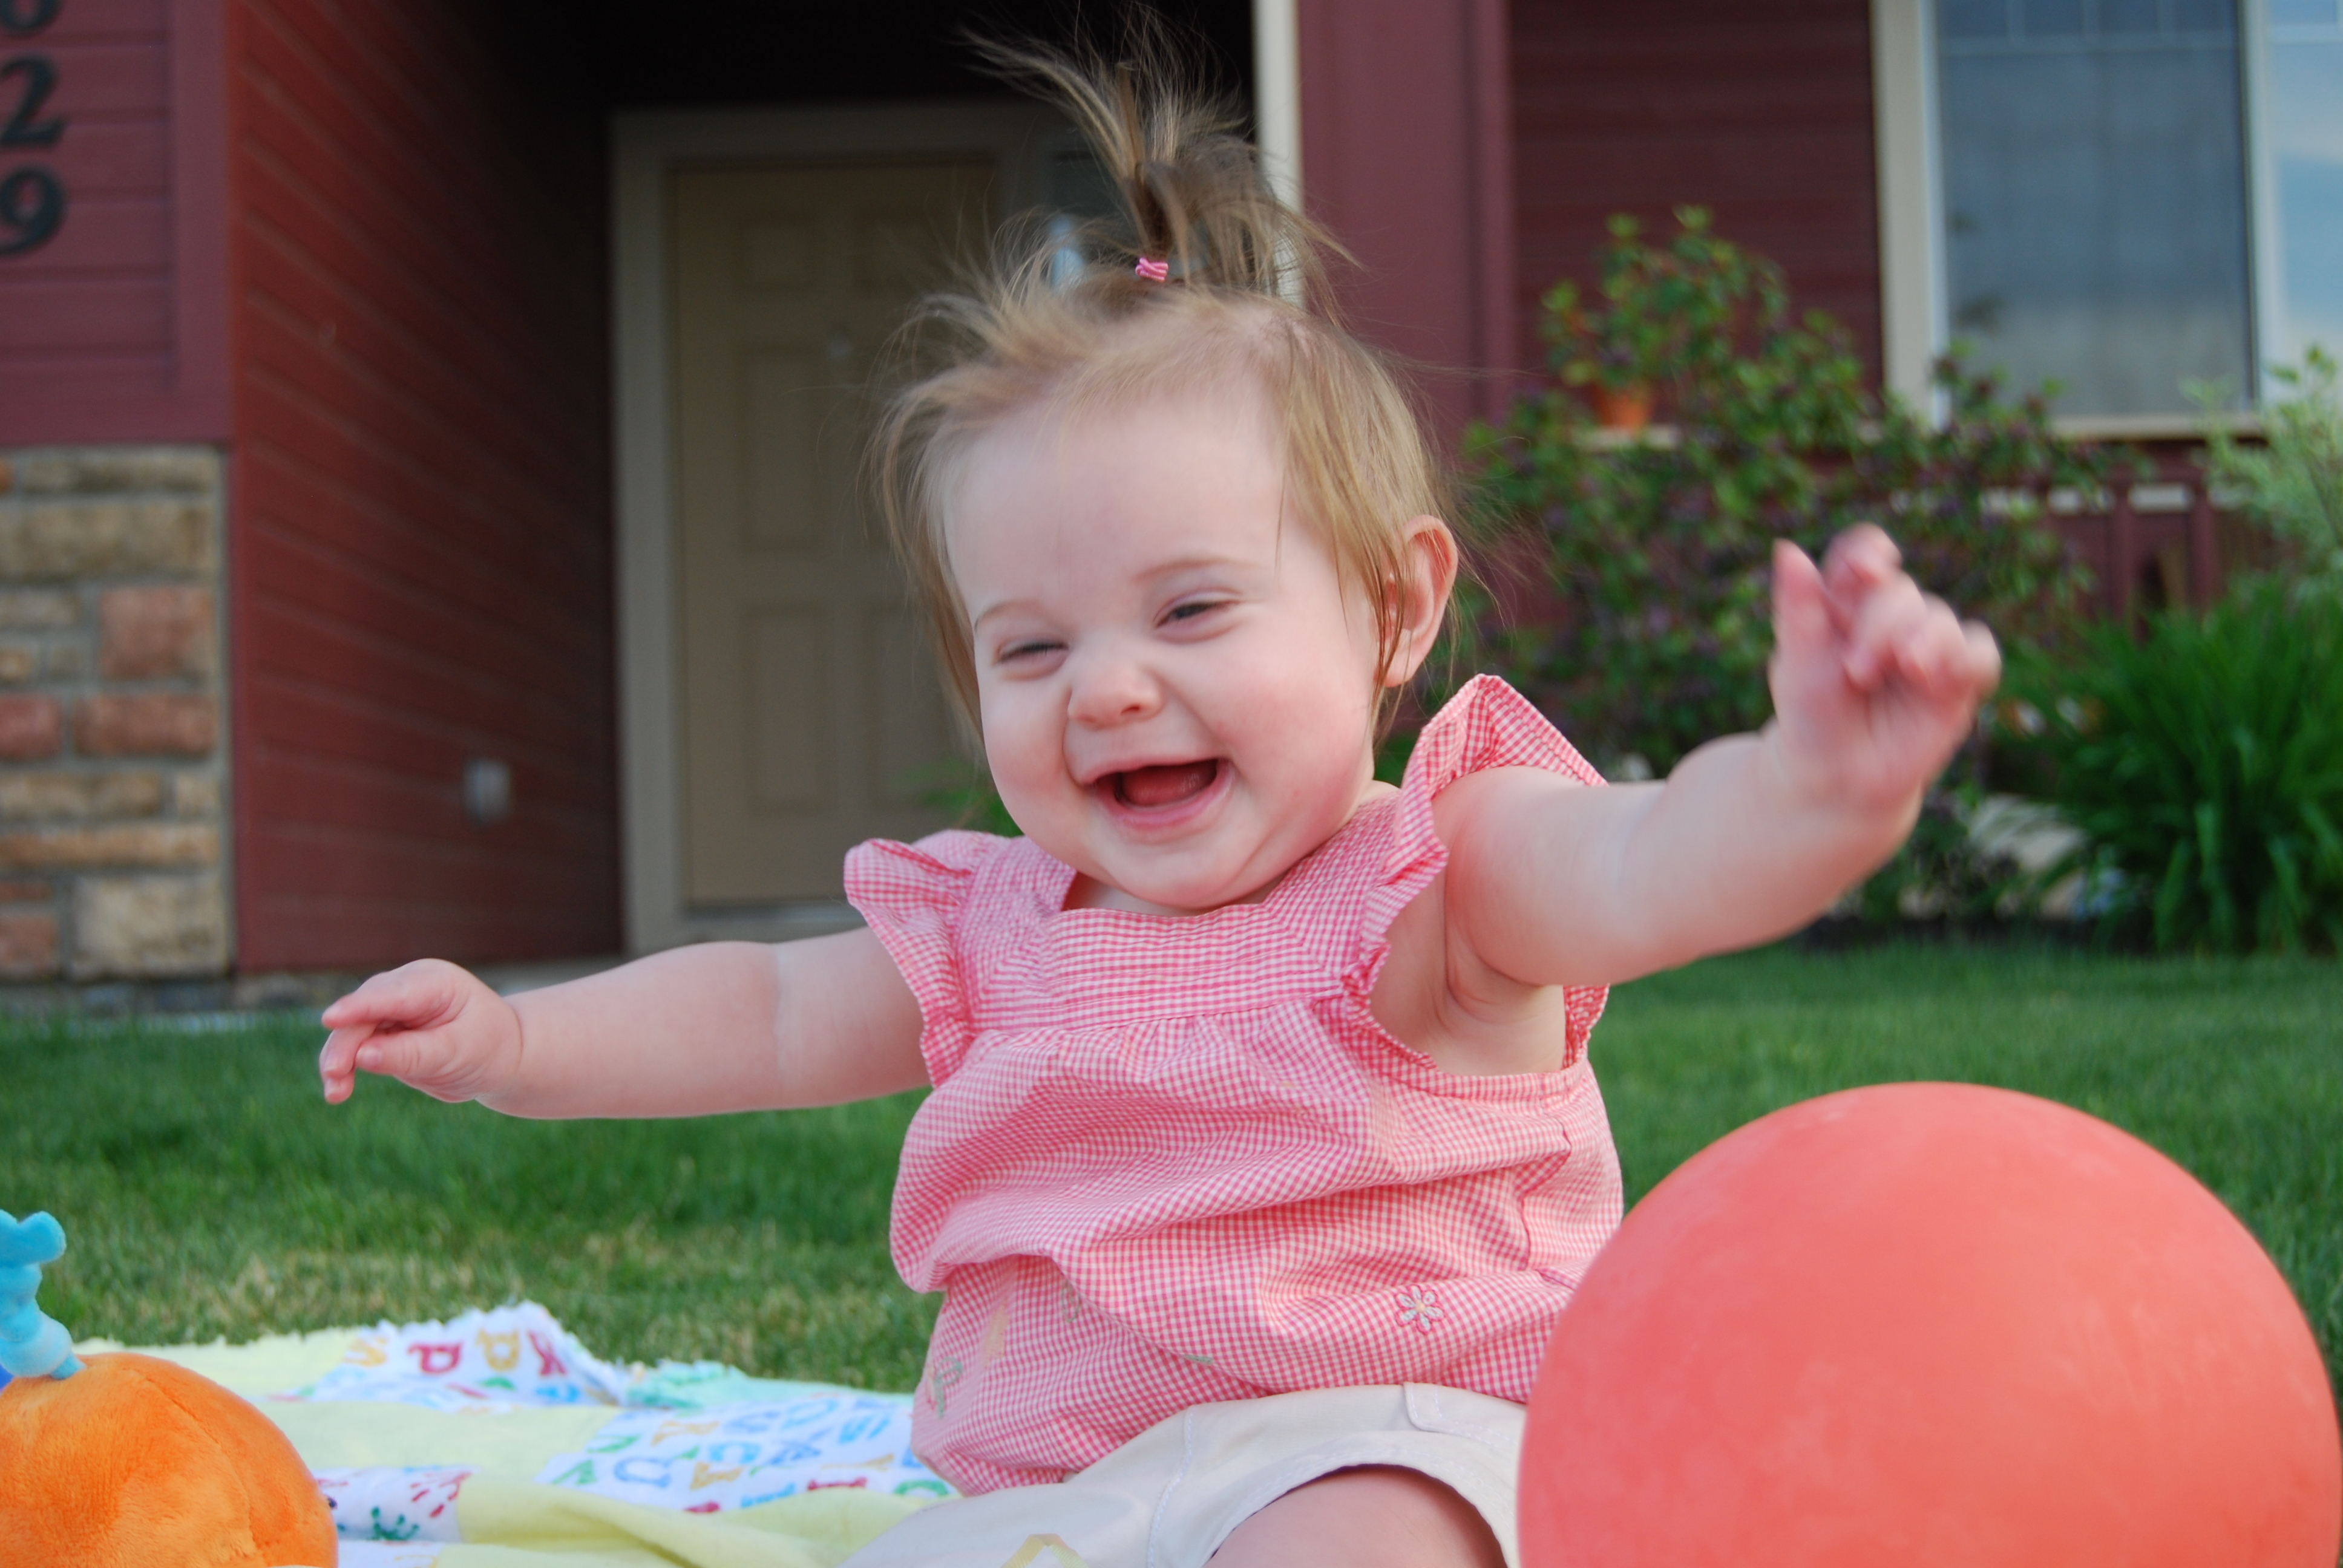 what's so cute about a baby? - best life quotes, poems, prayers